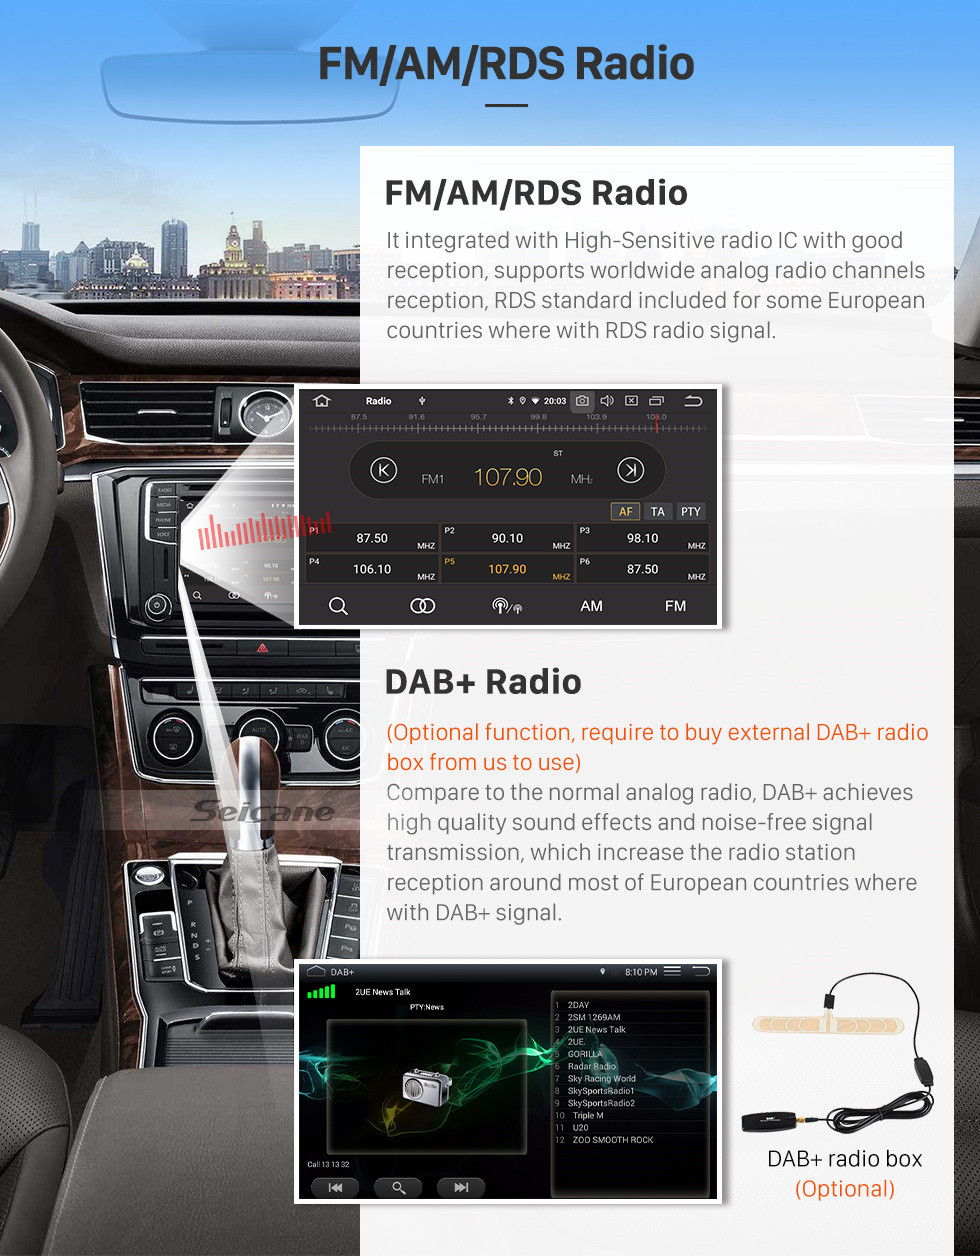 Seicane 10.1 inch For 2016 Honda Pilot Radio Android 10.0 GPS Navigation System WIFI Bluetooth HD Touchscreen Carplay support Digital TV DSP